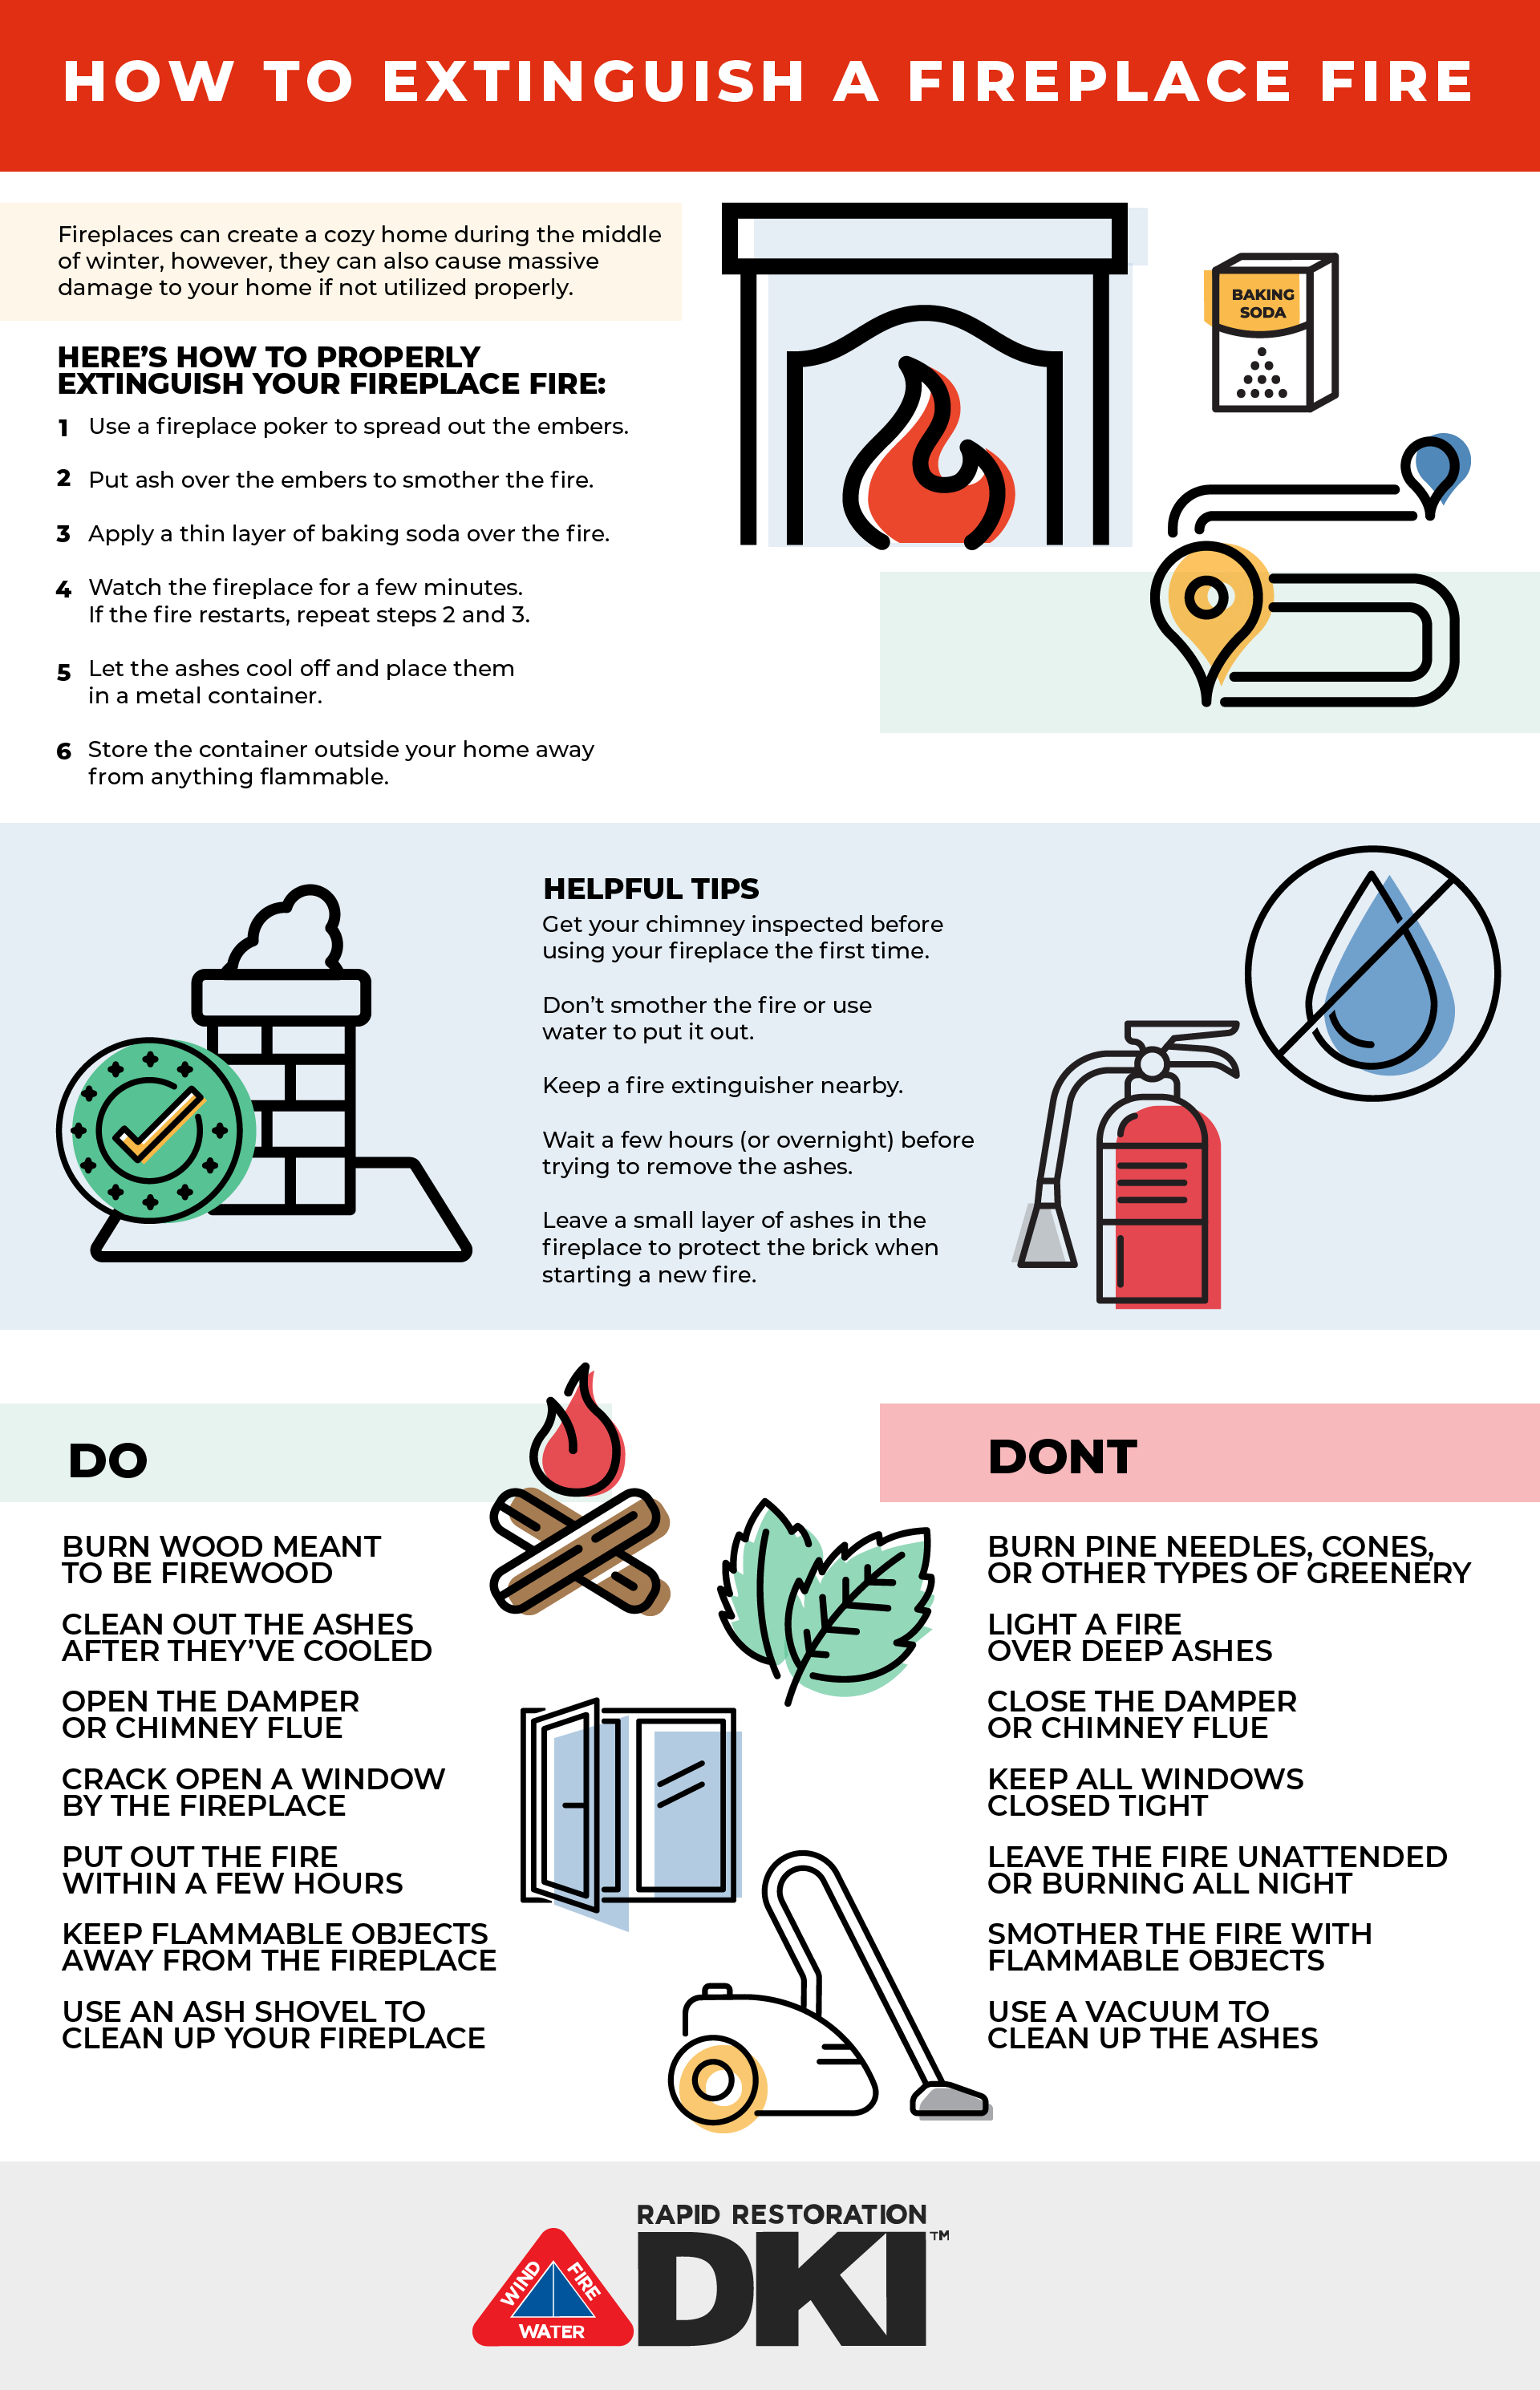 An infographic outlining what to do to put out a fireplace fire.